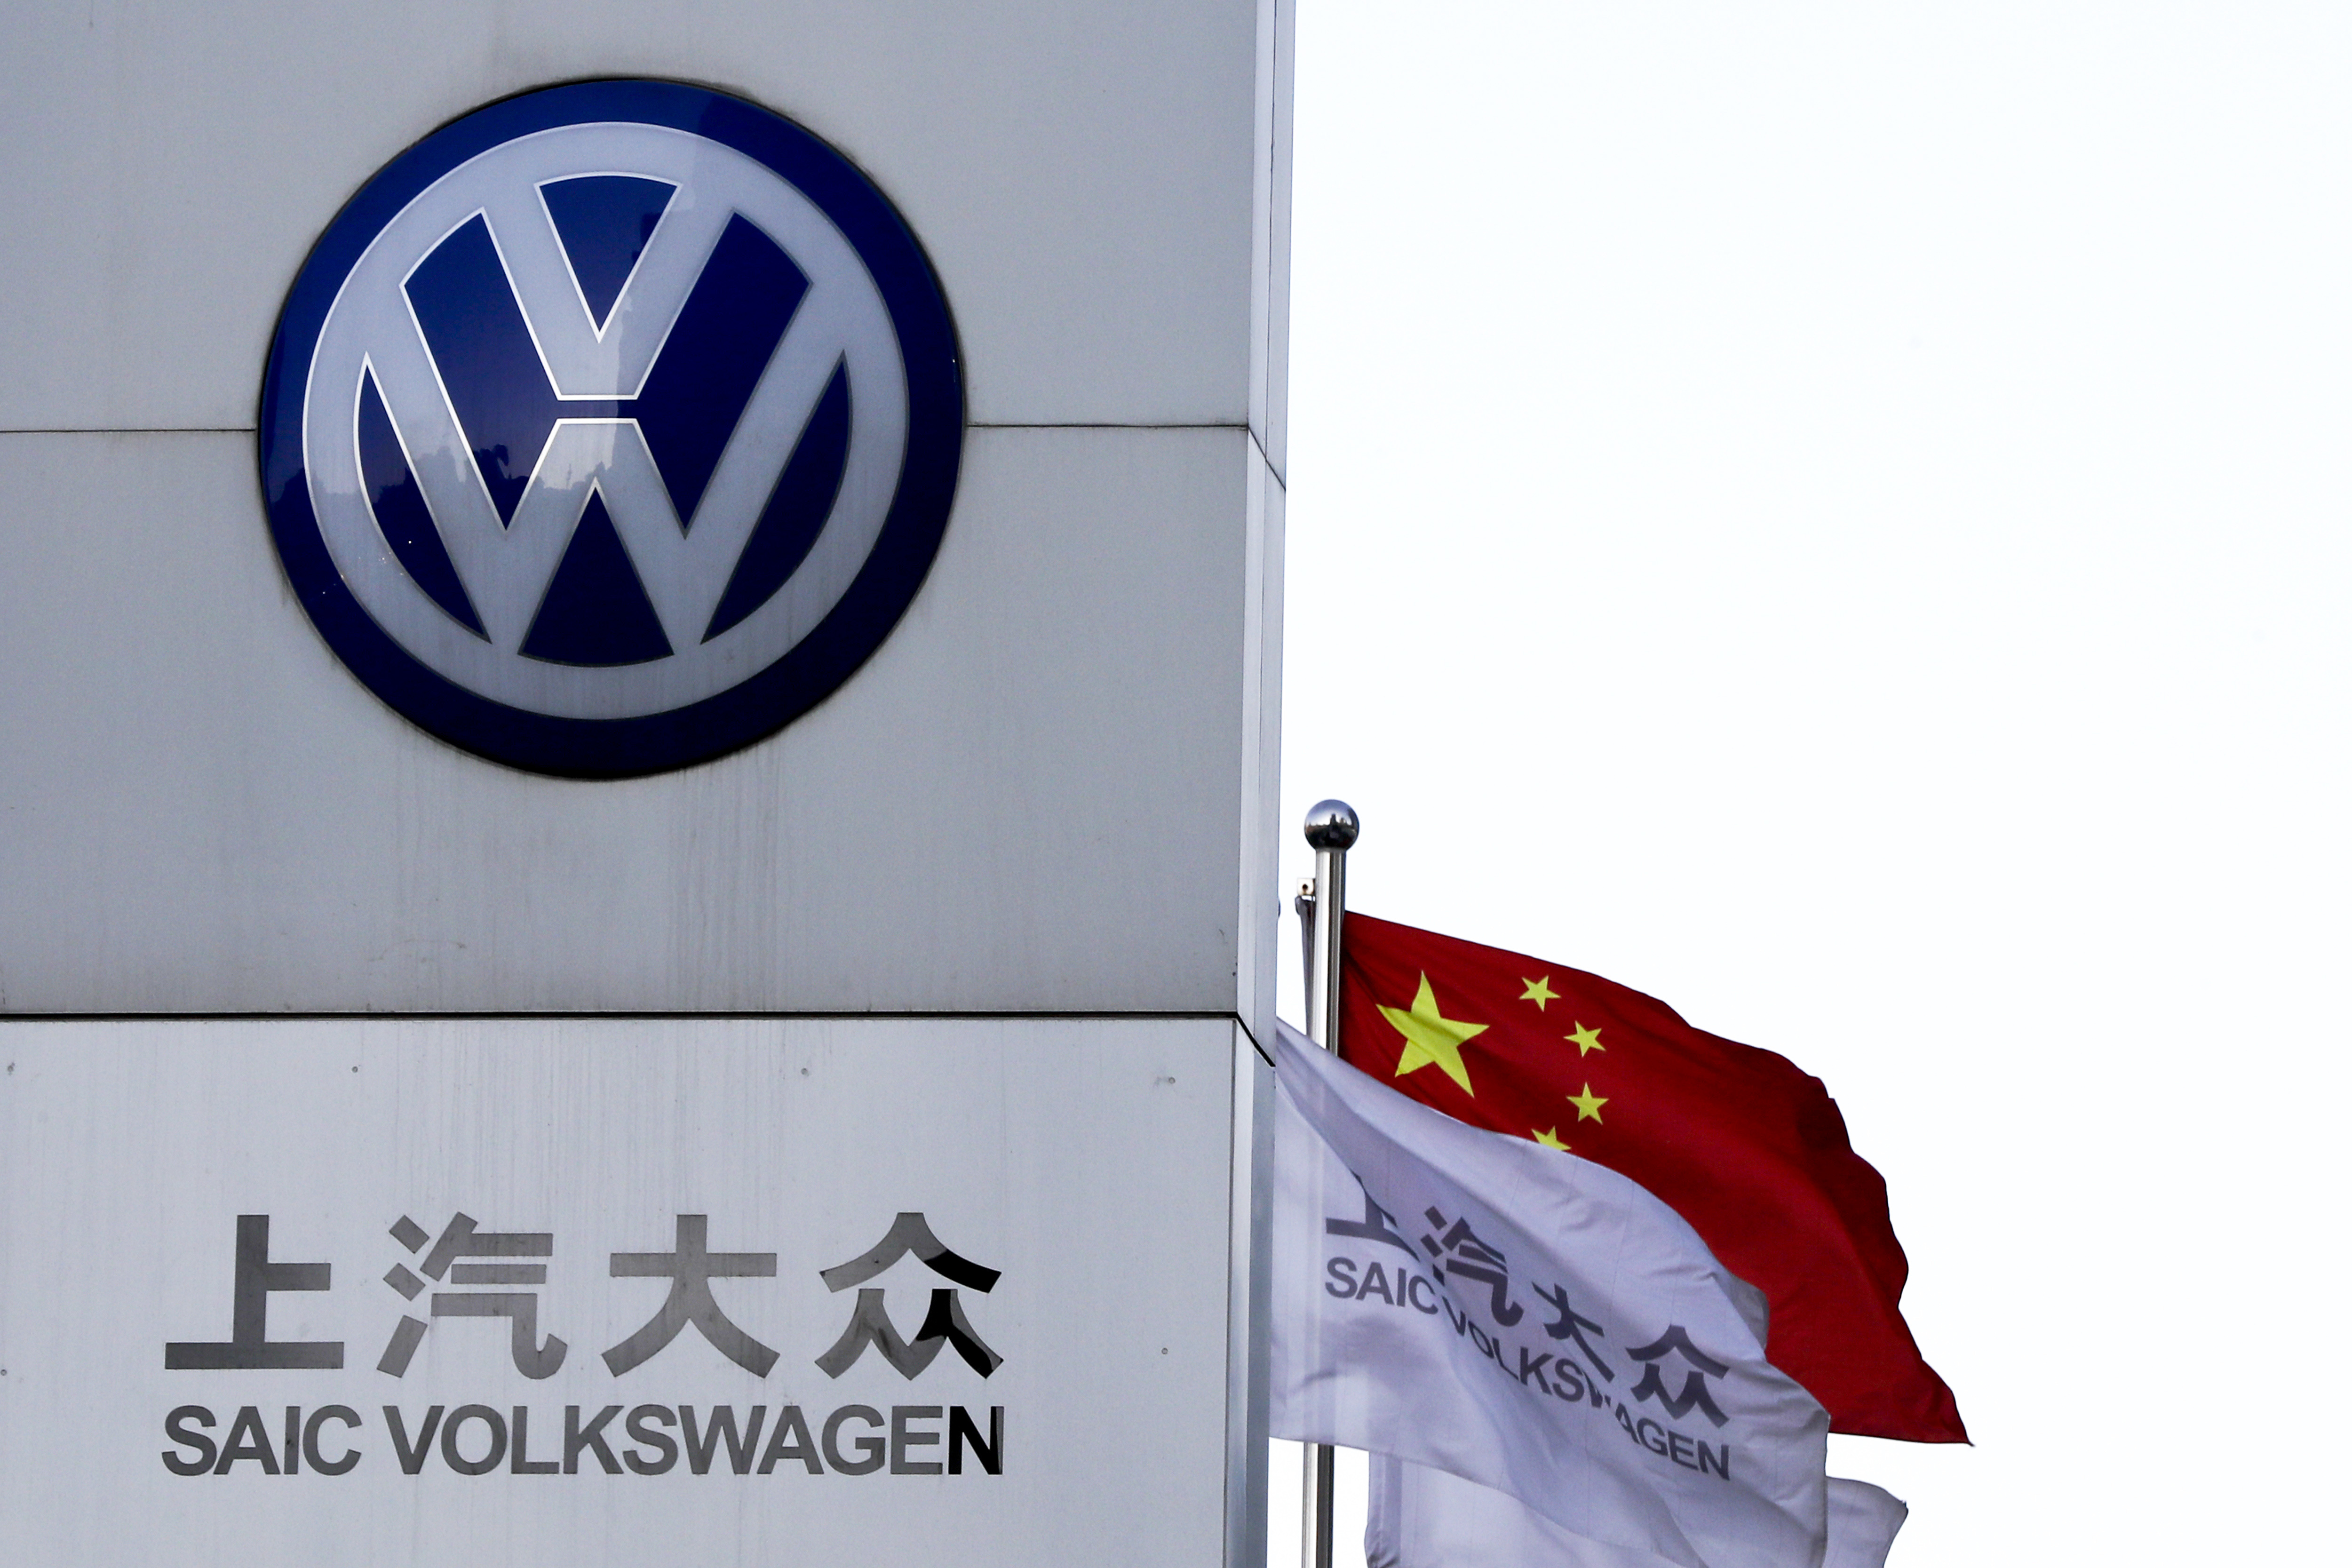 China Auto Show-9 A Chinese national flag flutters near a SAIC Volkswagen, a joint venture between SAIC Motor and Volkswagen's dealer showroom and service center in Beijing, Tuesday, April 18, 2017. Volkswagen, Europe's biggest automaker, plans to launch its first pure-electric car in China next year as Beijing steps up pressure on the industry to reduce reliance on gasoline, following the announcement Tuesday comes on the eve of the Shanghai auto show, which showcases industry efforts to create electric cars with consumer appeal. (AP Photo/Andy Wong)